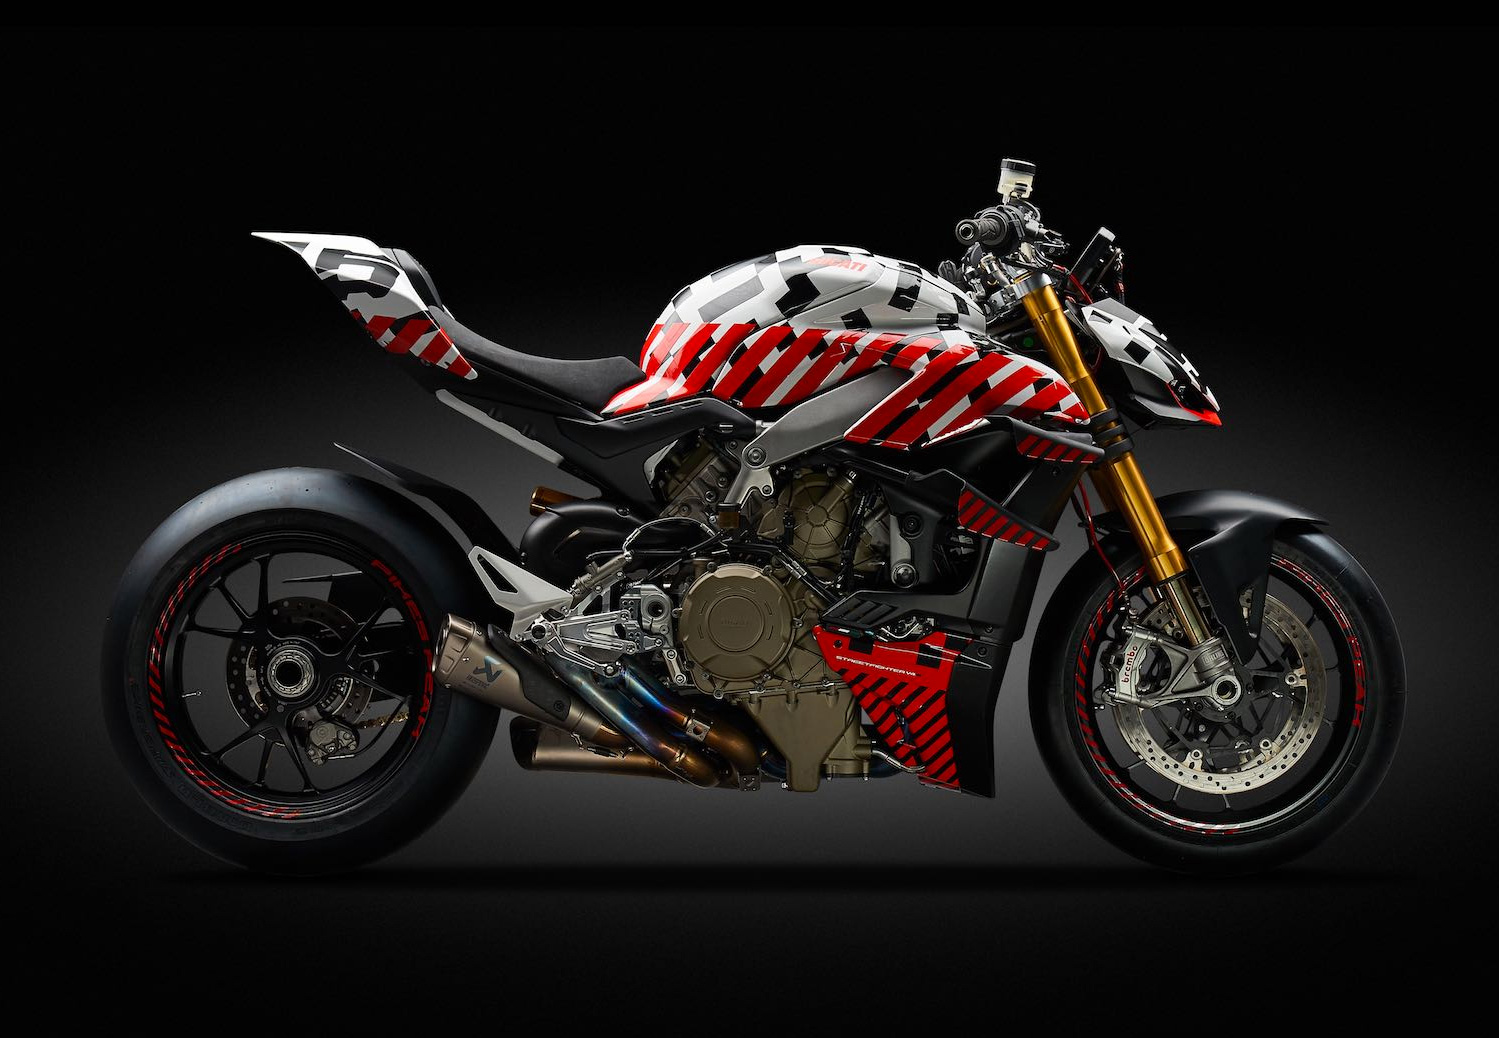 Ducati Transformed Its Iconic Paningale V4 into a Streetfighter at werd.com